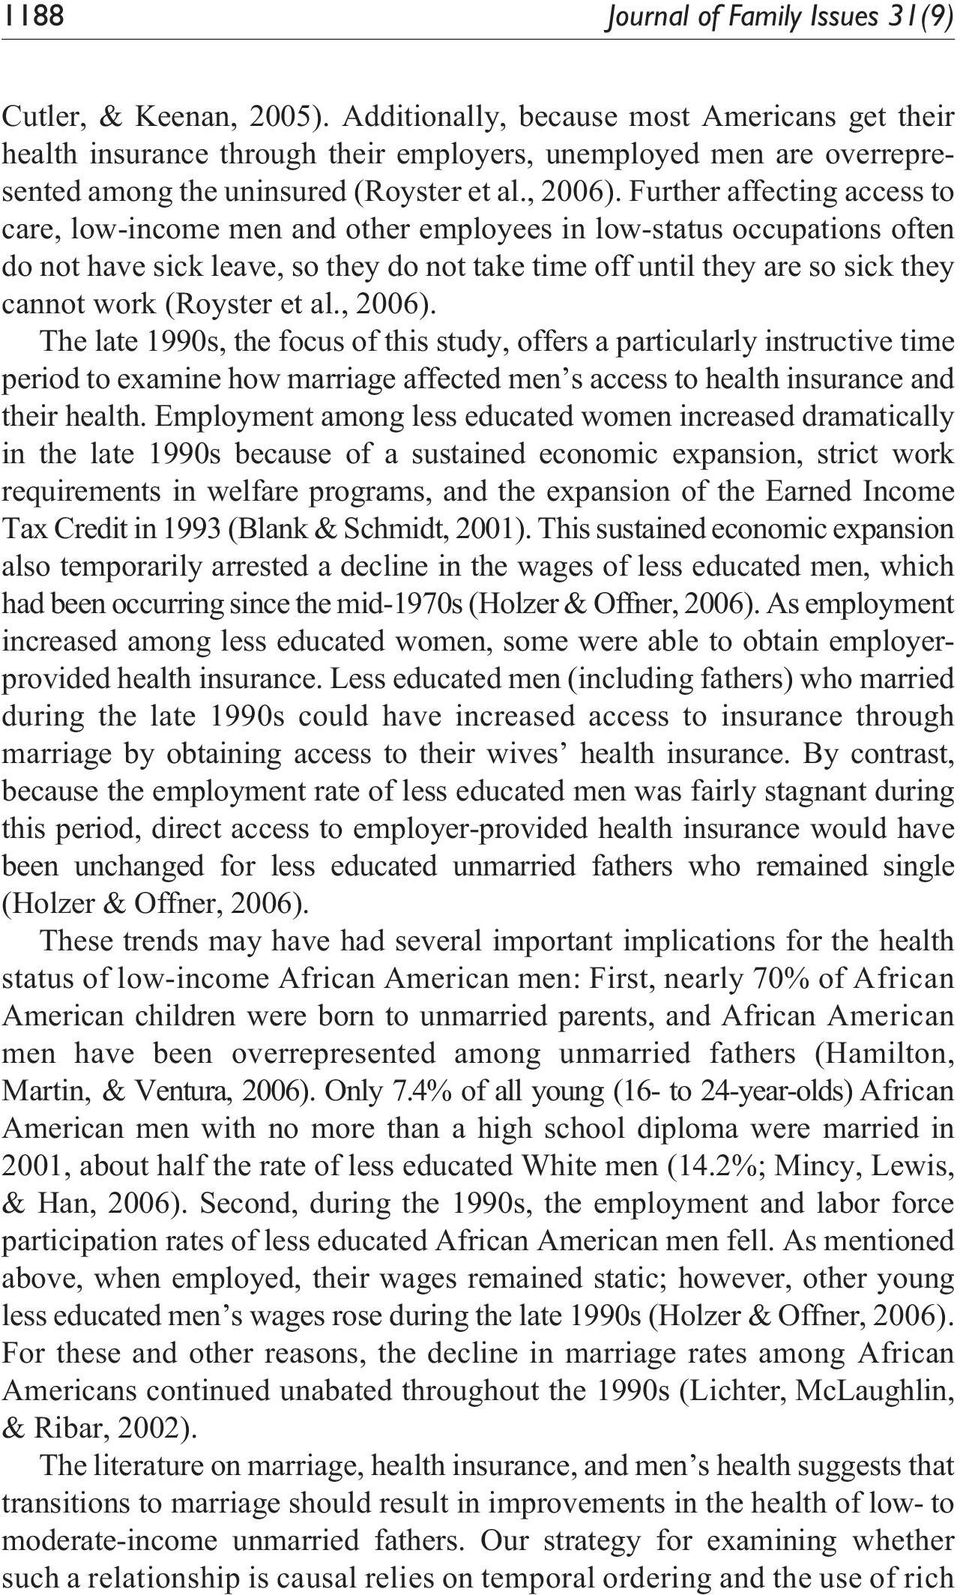 Further affecting access to care, low-income men and other employees in low-status occupations often do not have sick leave, so they do not take time off until they are so sick they cannot work